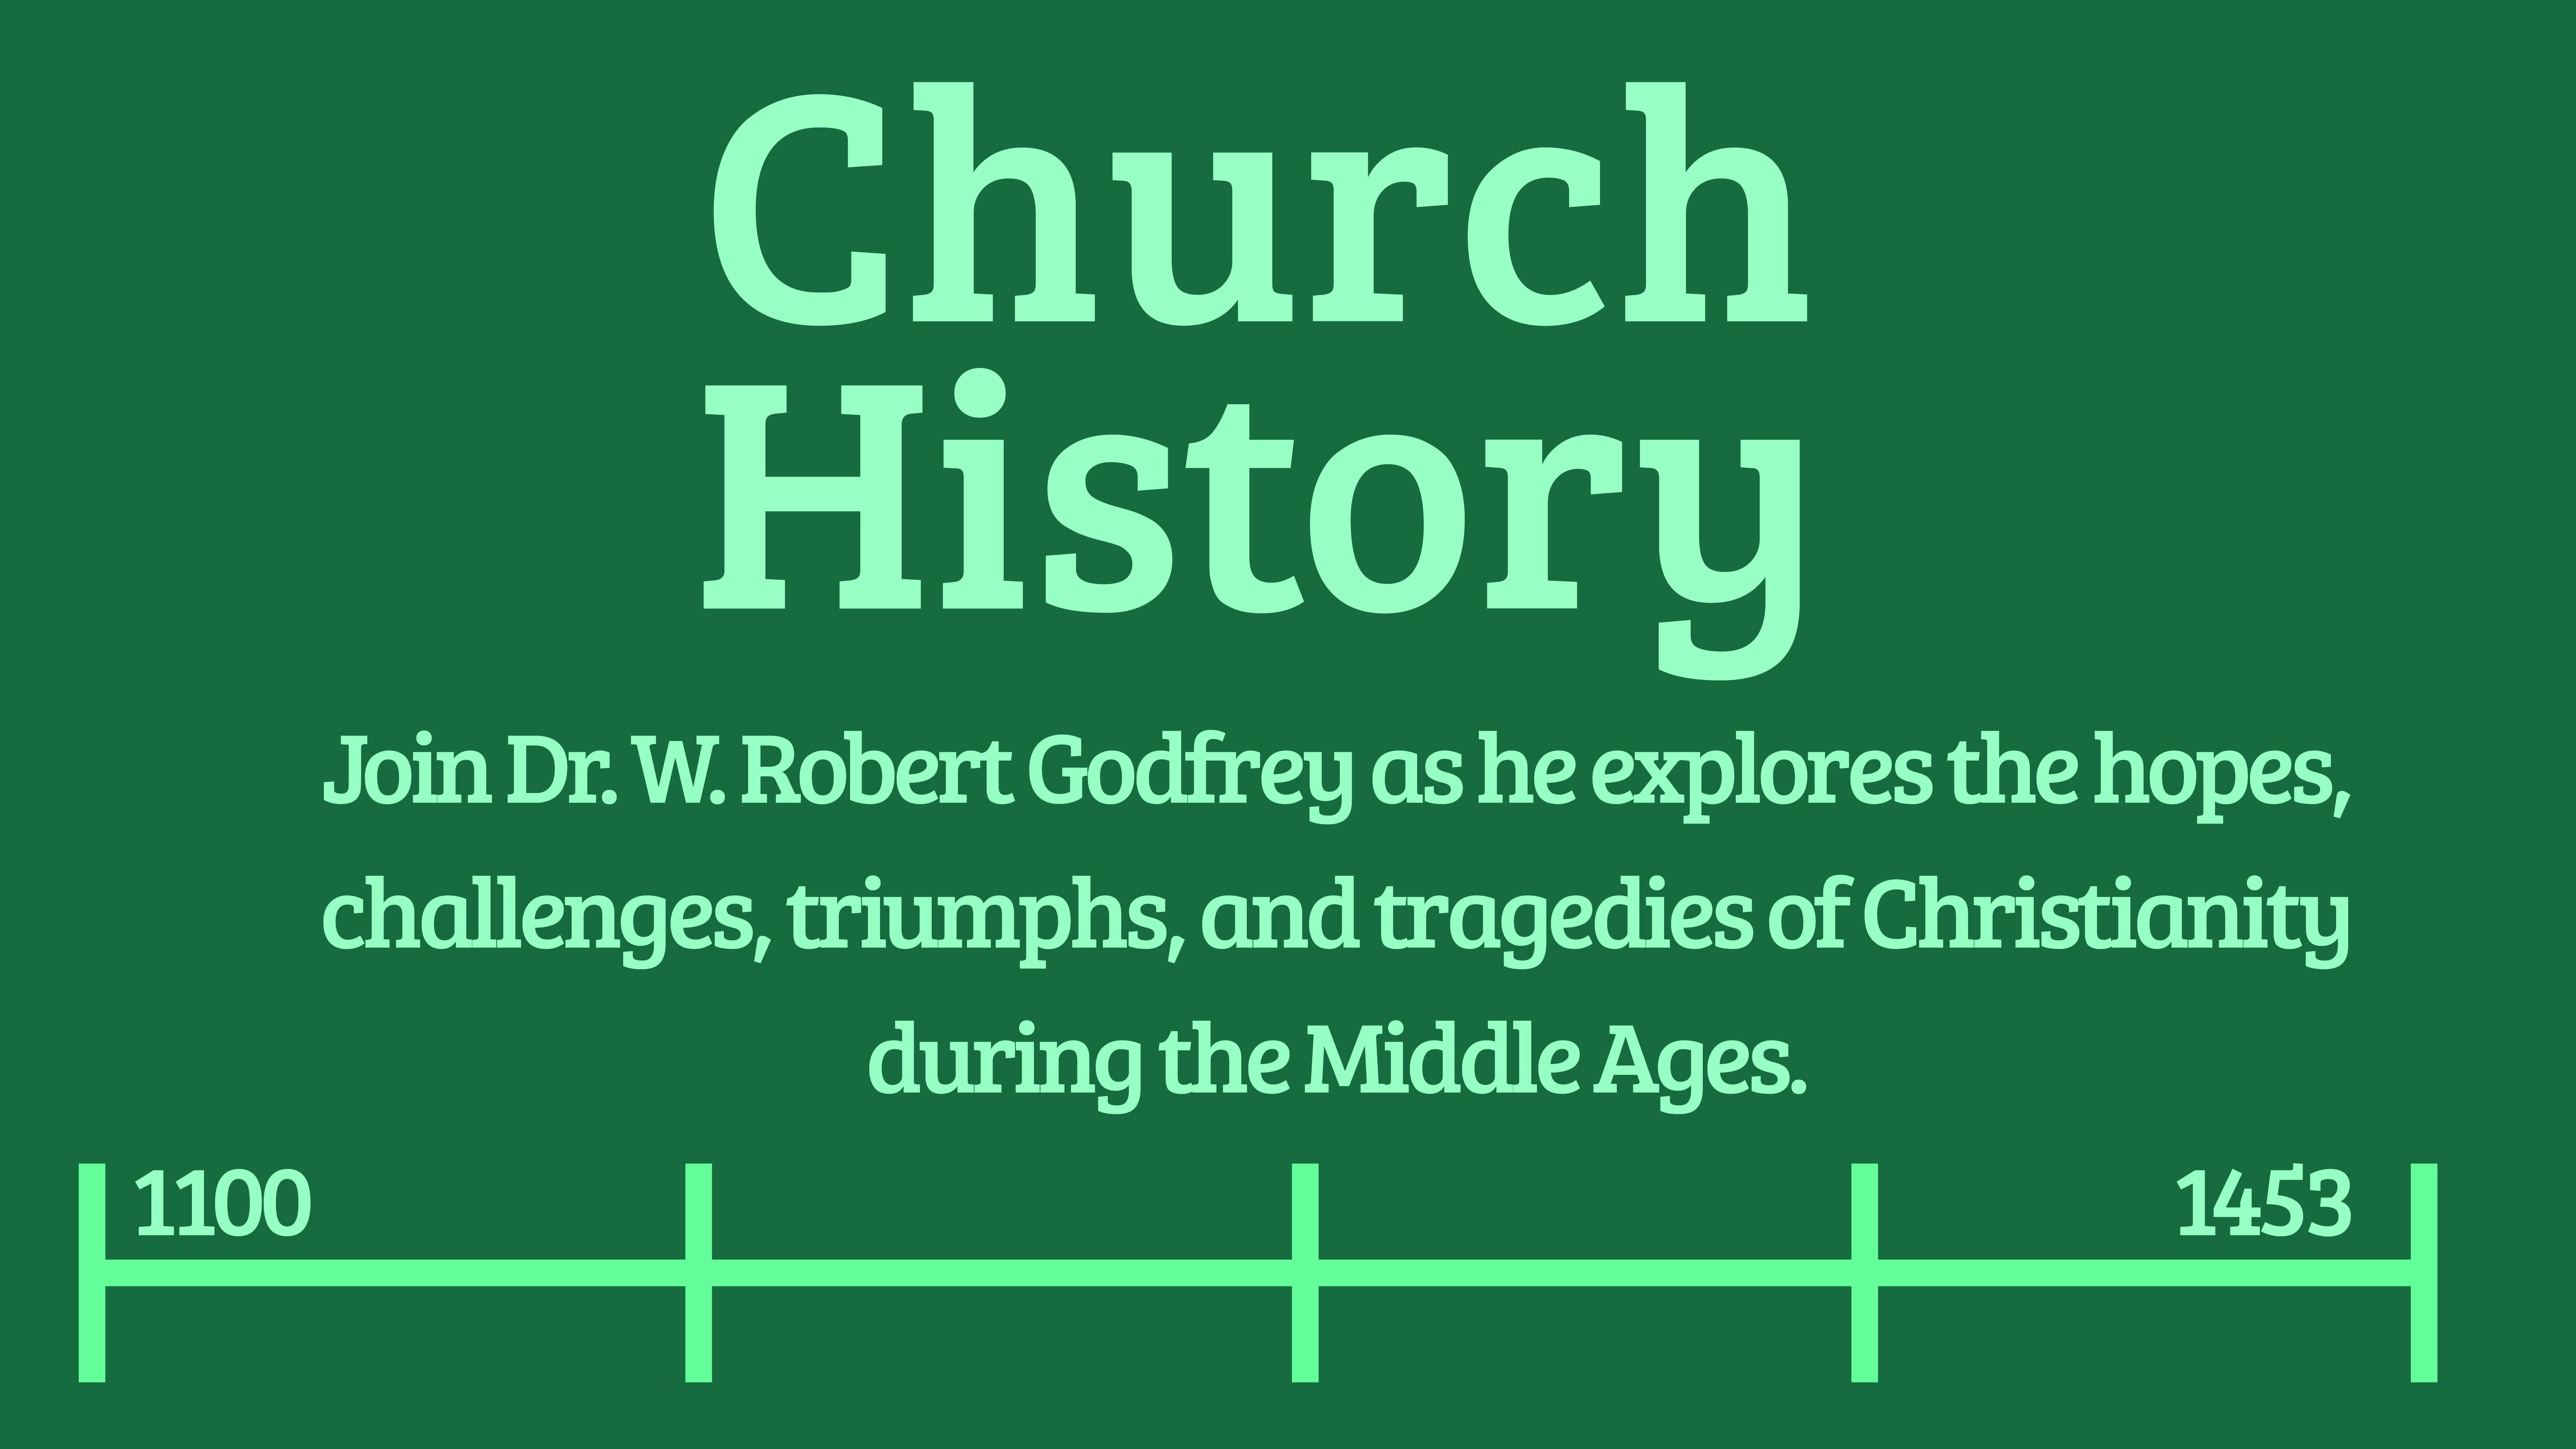 church history (middle ages) image